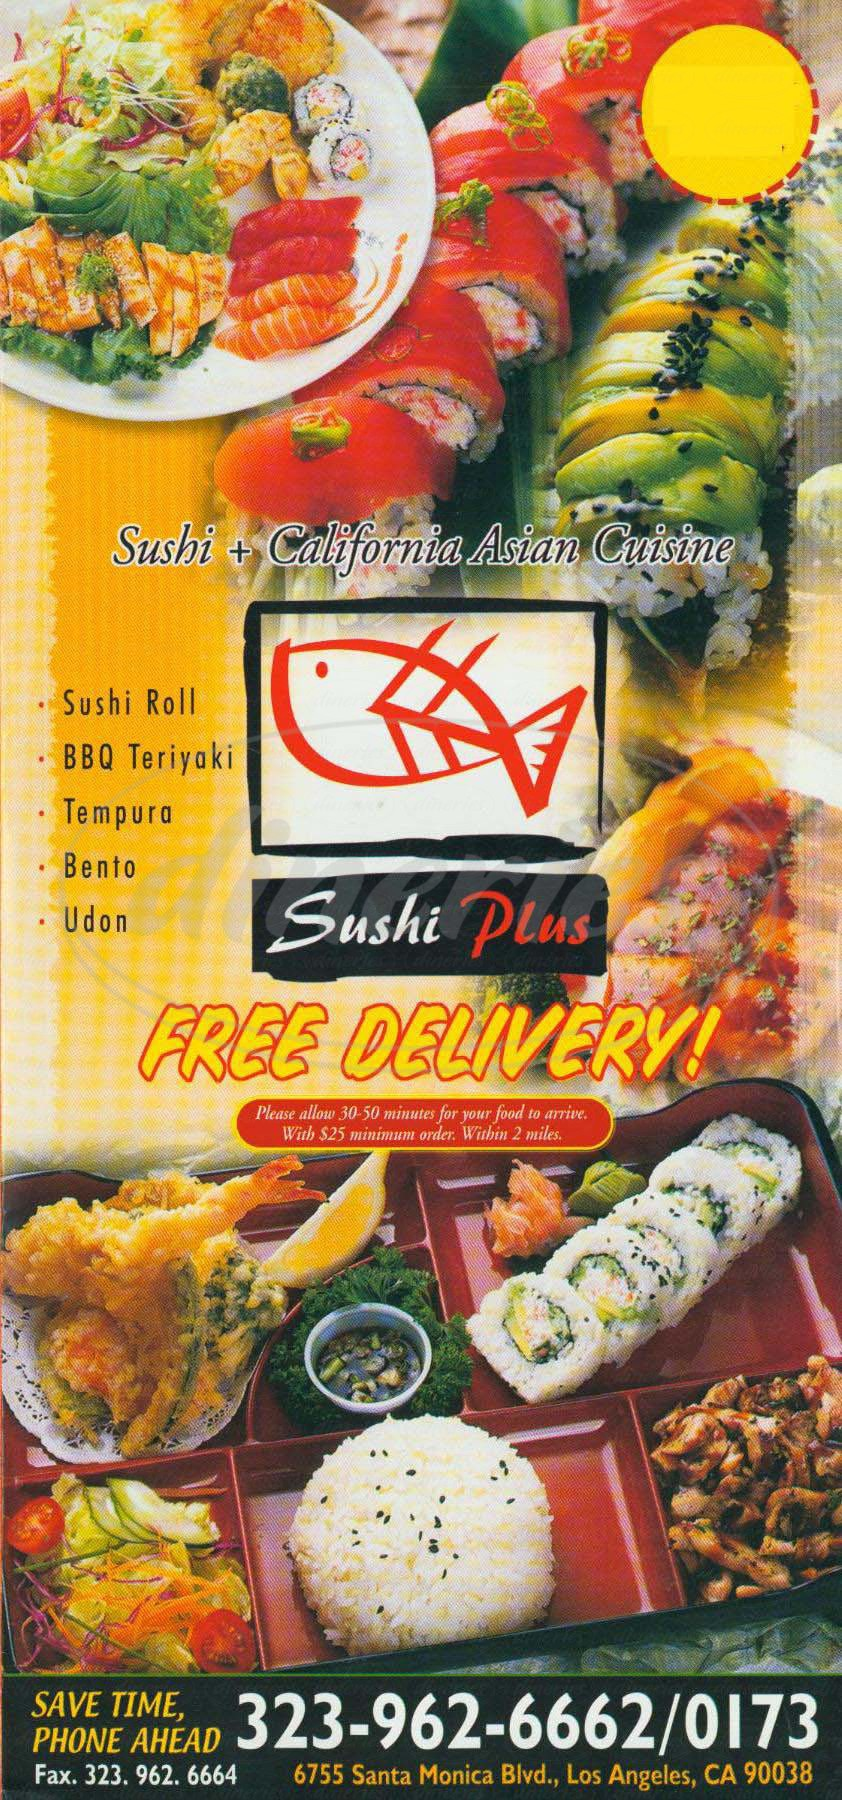 menu for Sushi Plus